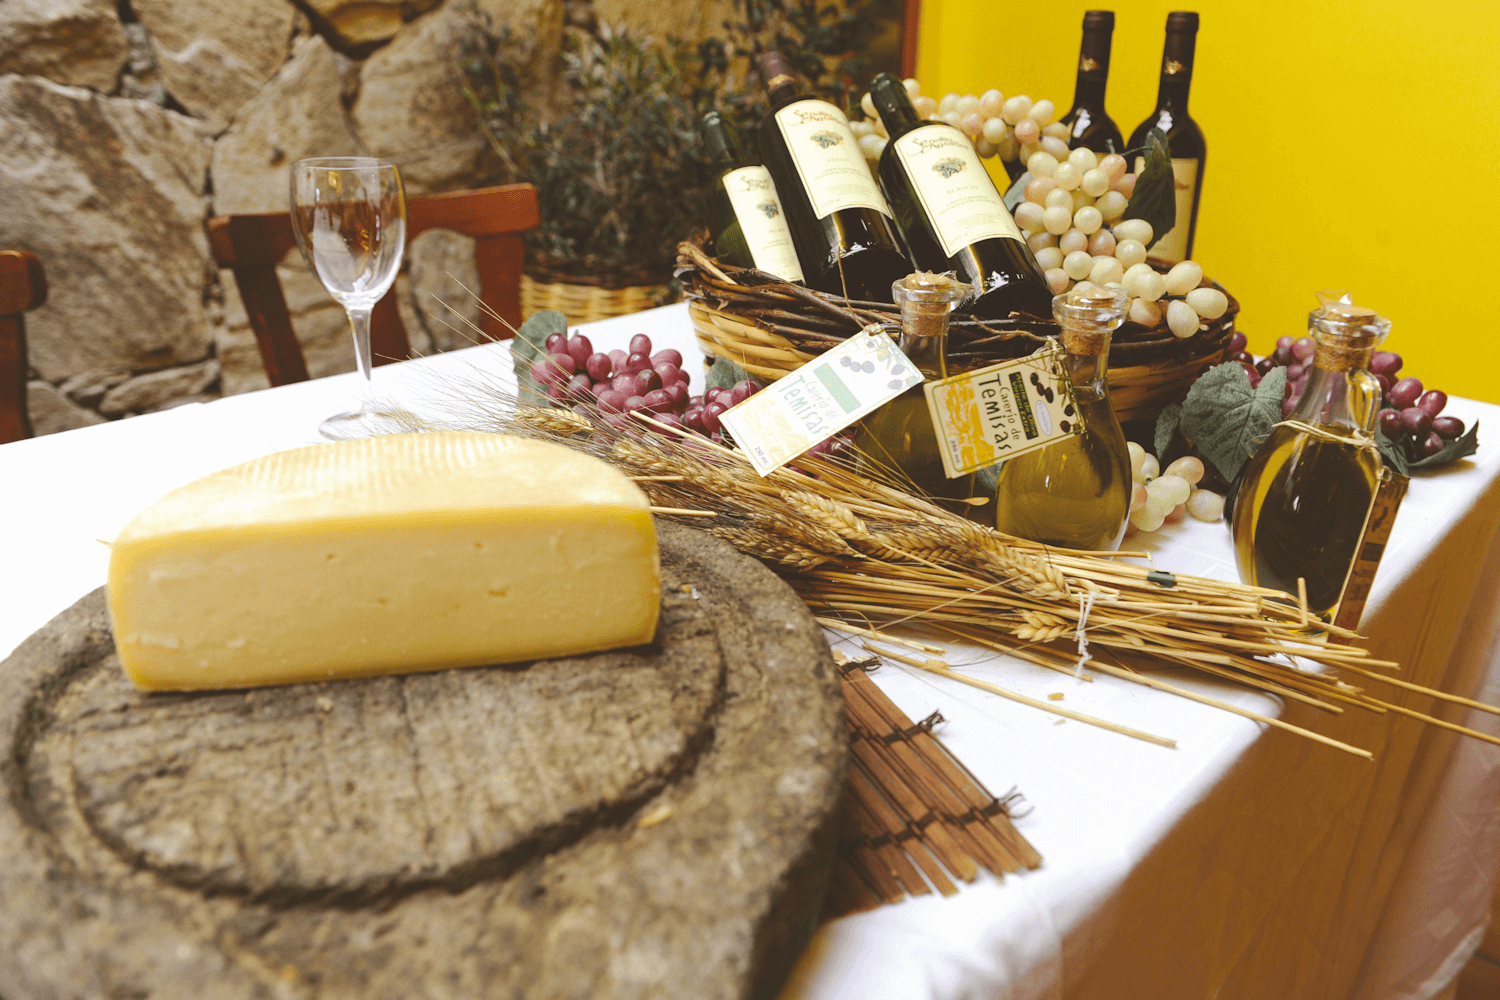 Turismo de Canarias, cheese and wine